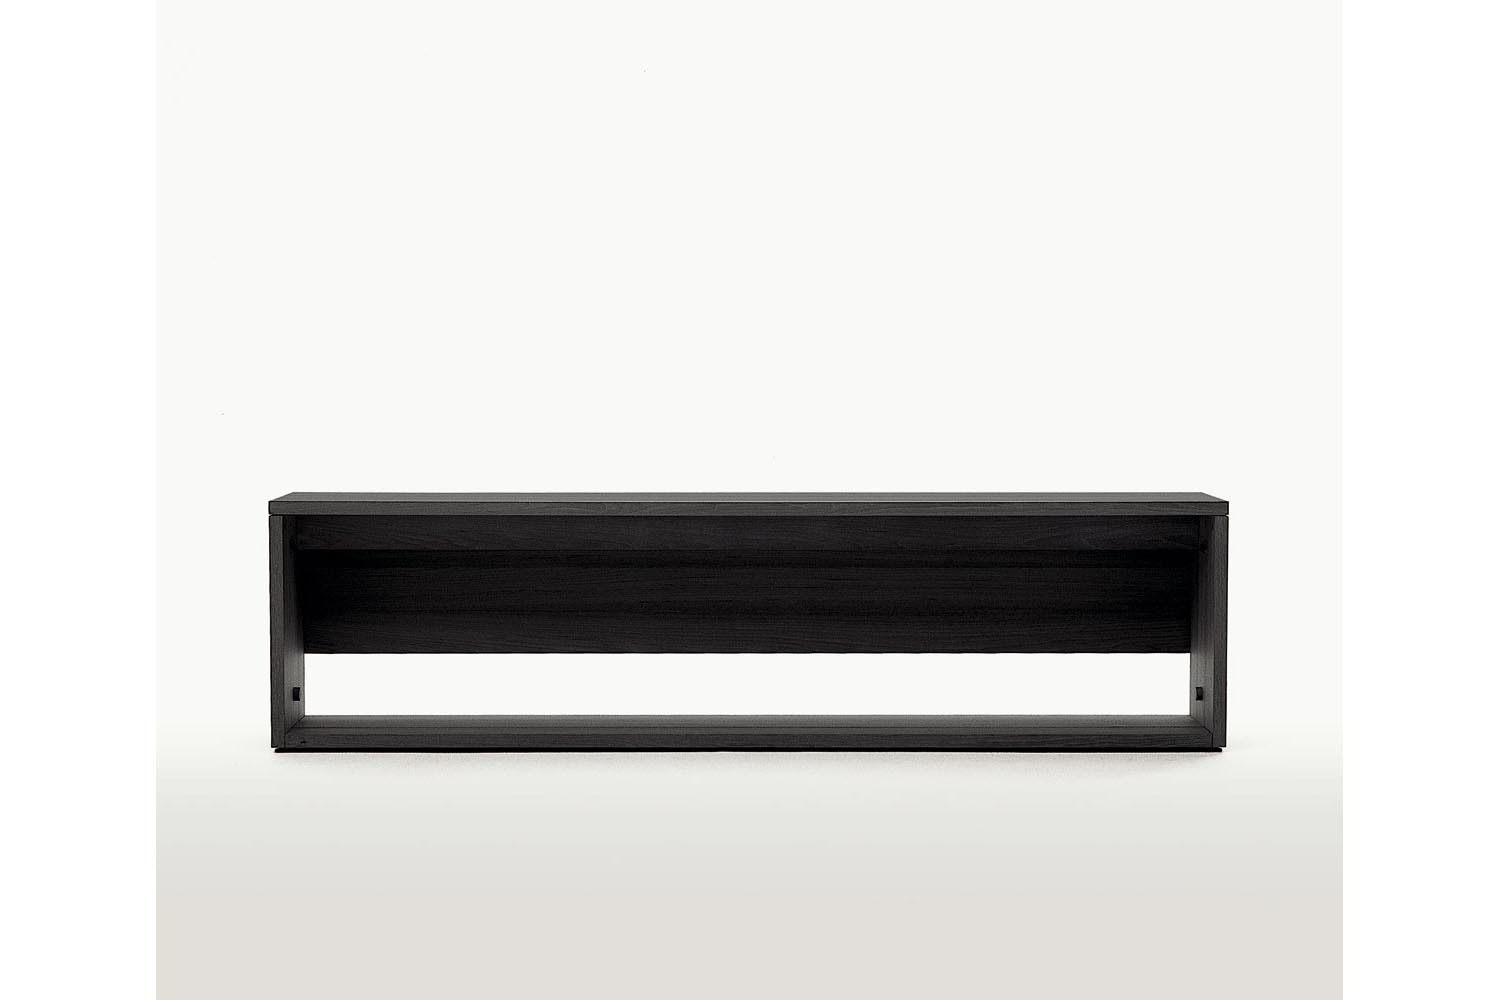 Cuma Console Table by Antonio Citterio for Maxalto